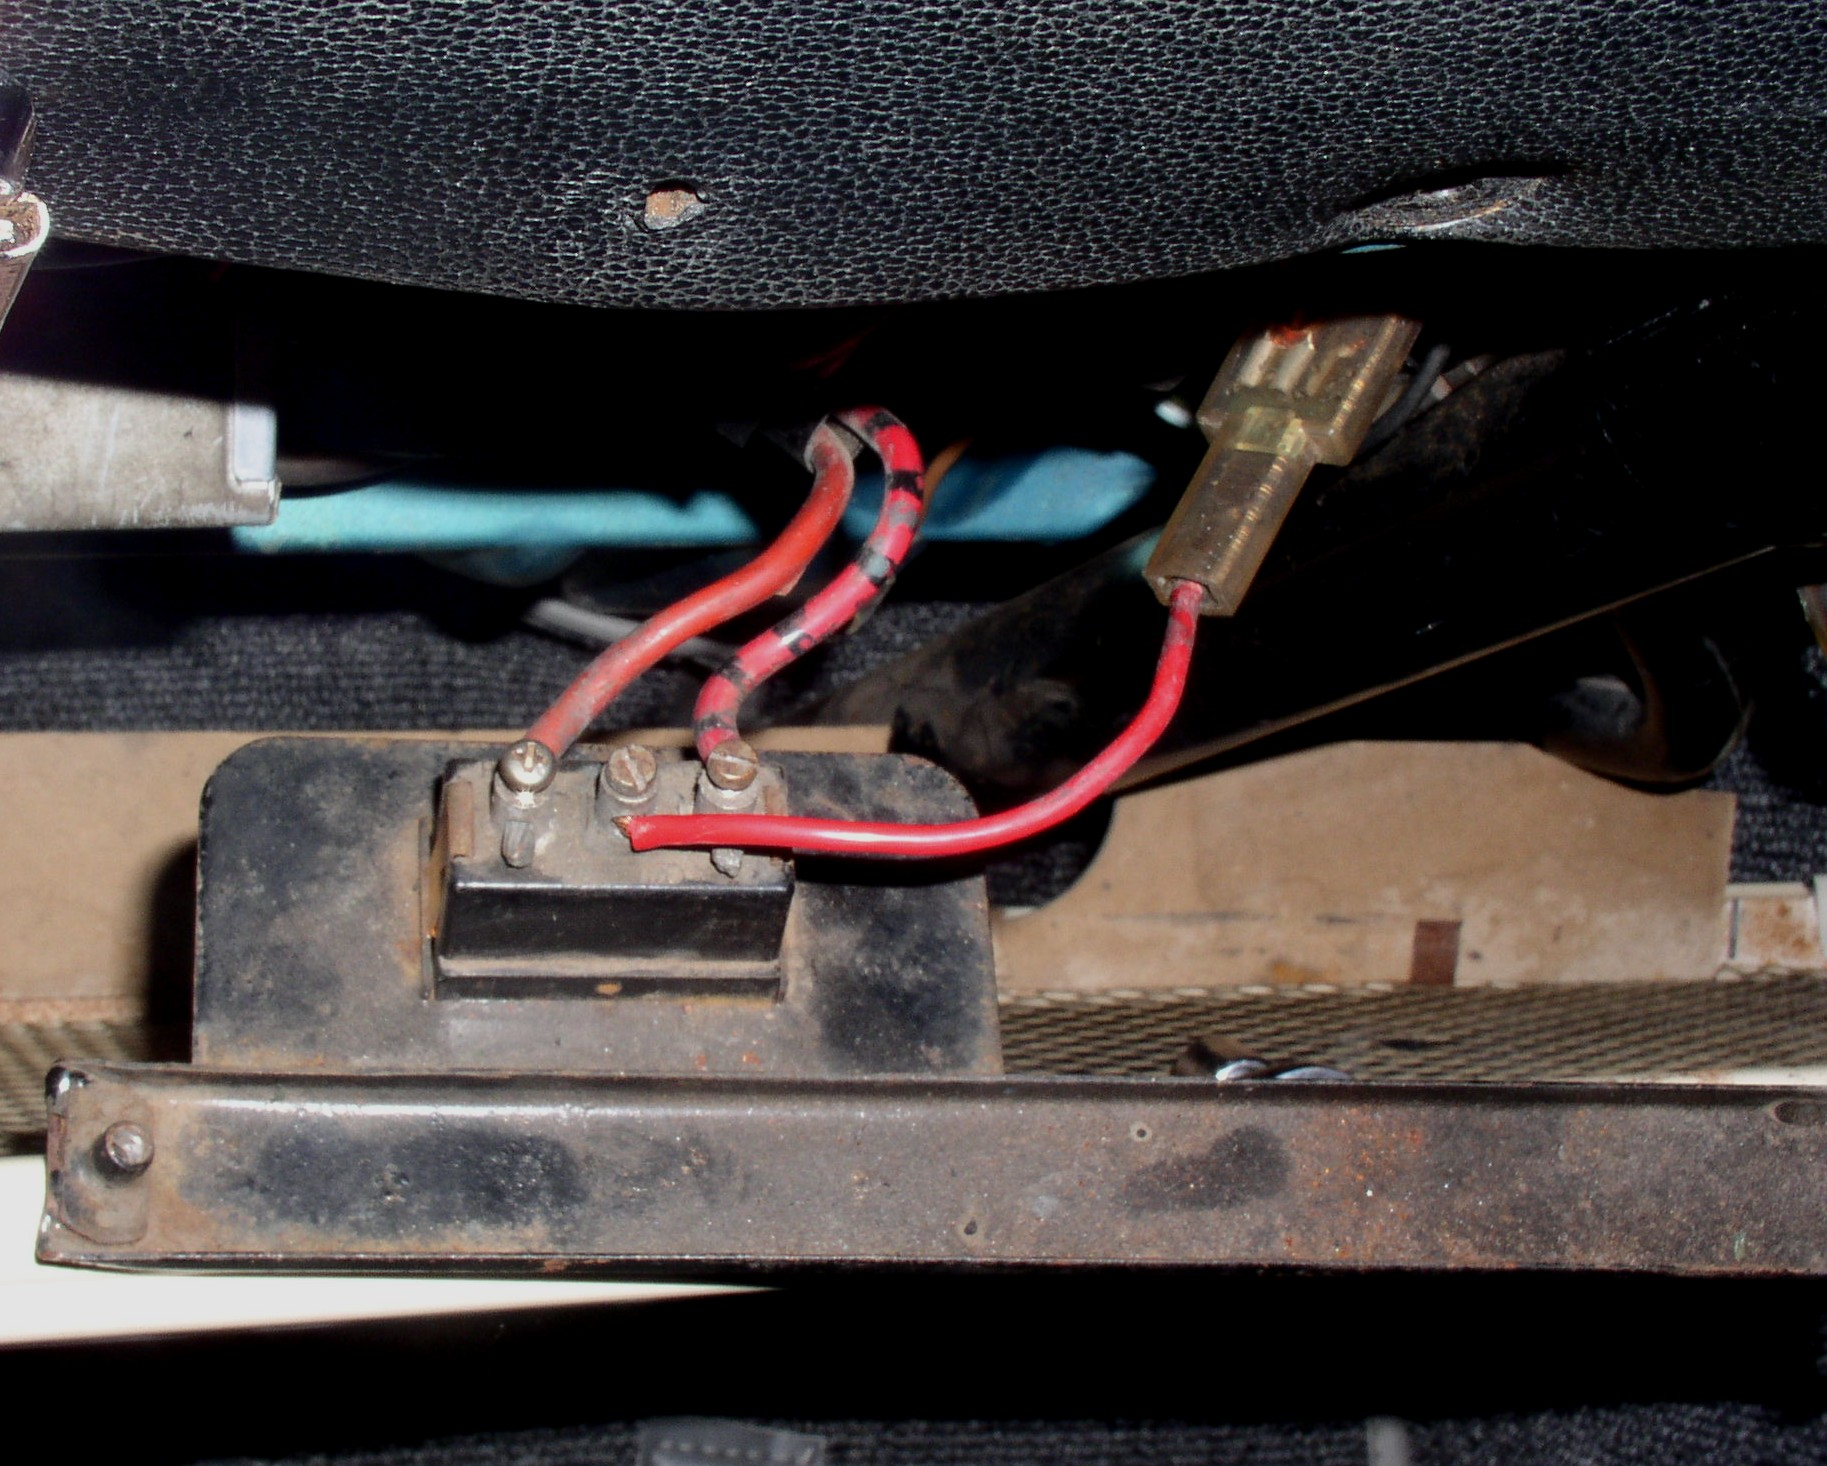 Astra Twintop Fuse Box Diagram Trusted Wiring Diagrams H Problem Electric Sunroof Troubleshooting Opel Interior